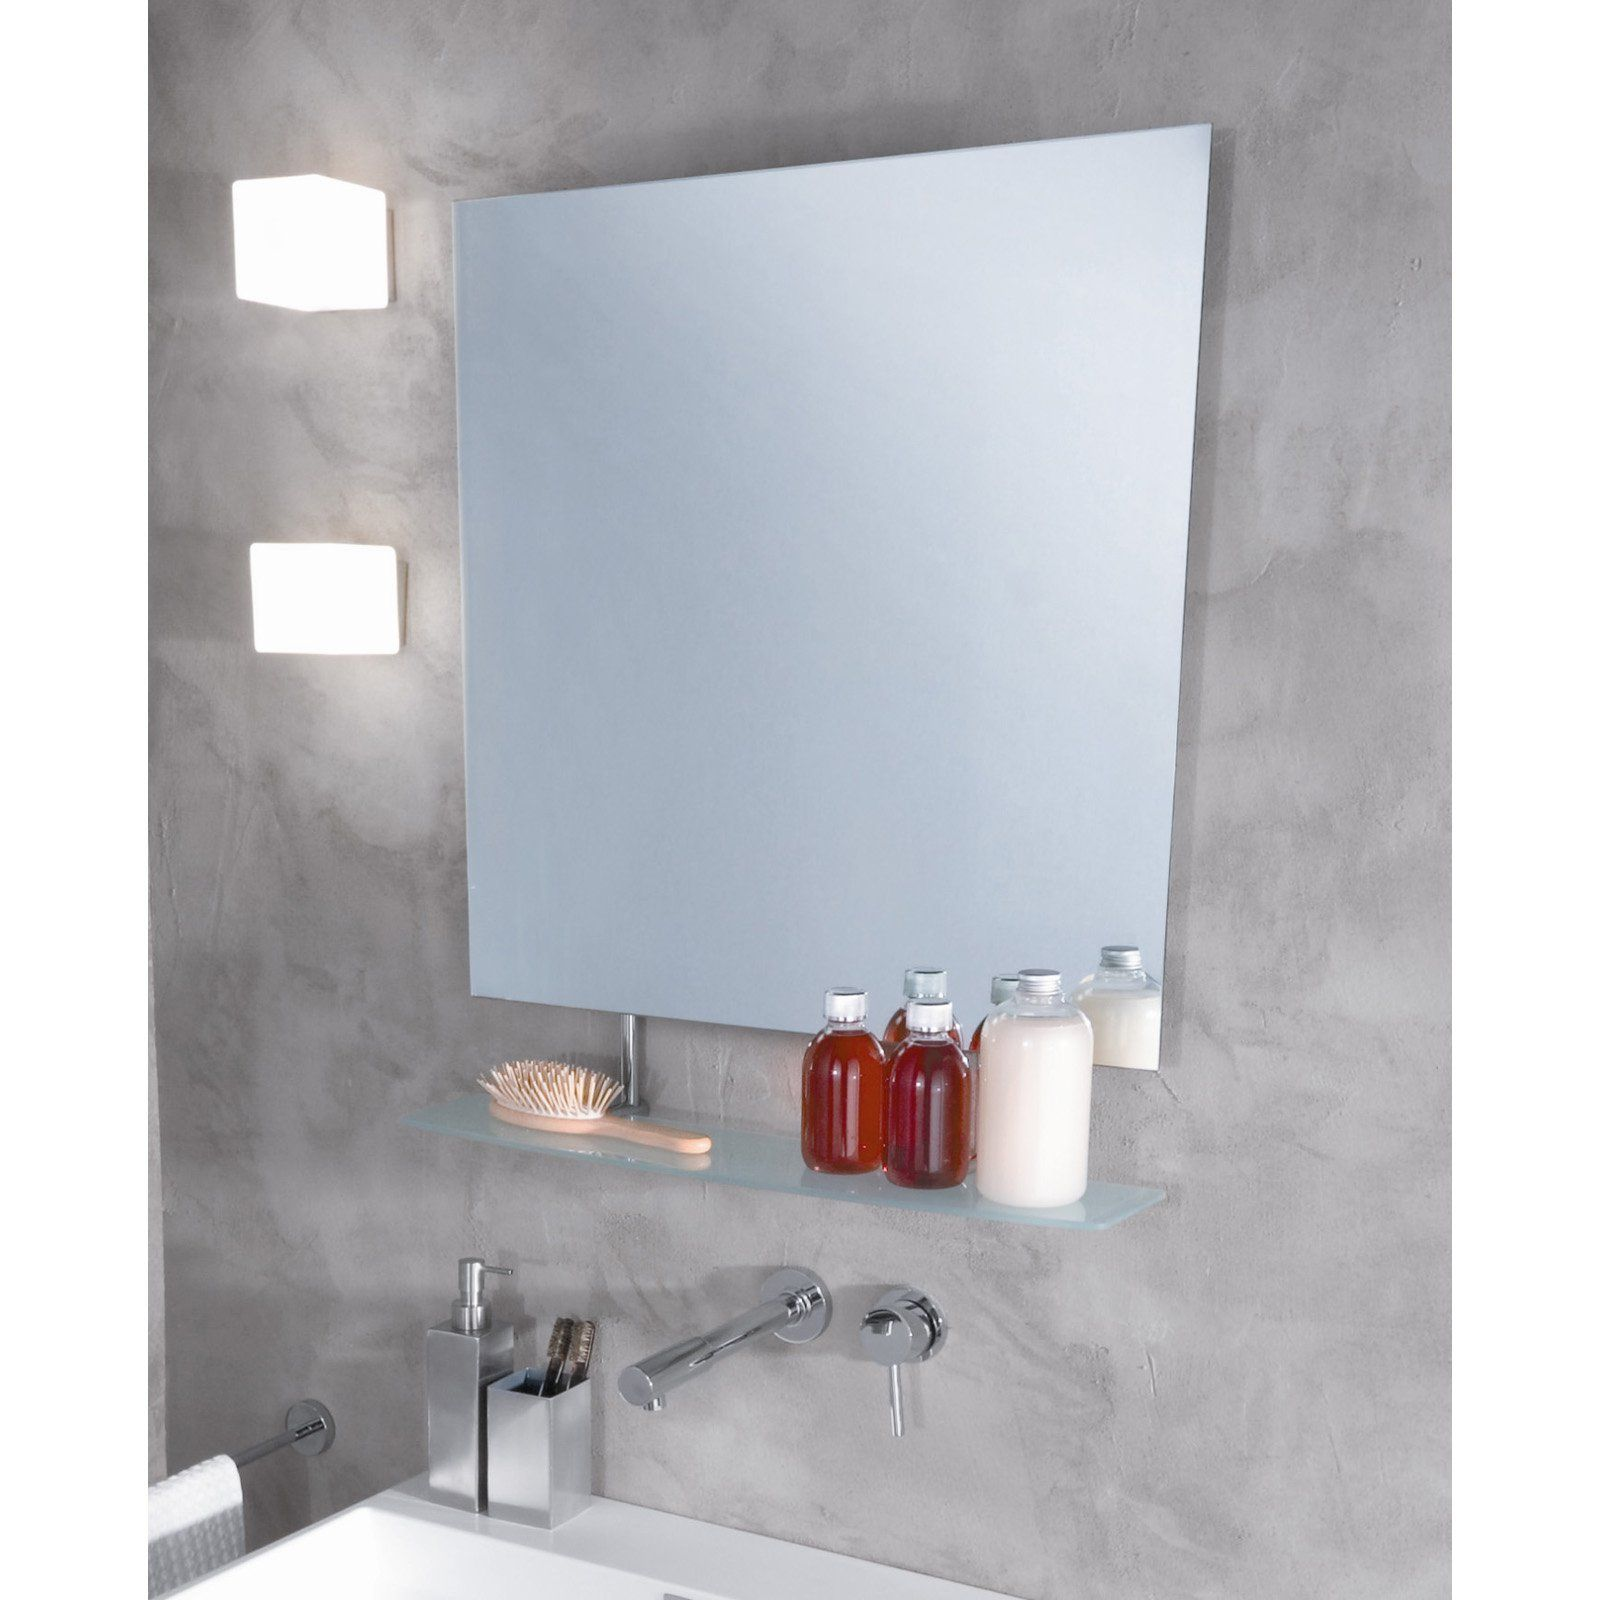 Ws bath collections speci vanity wall mirror speci